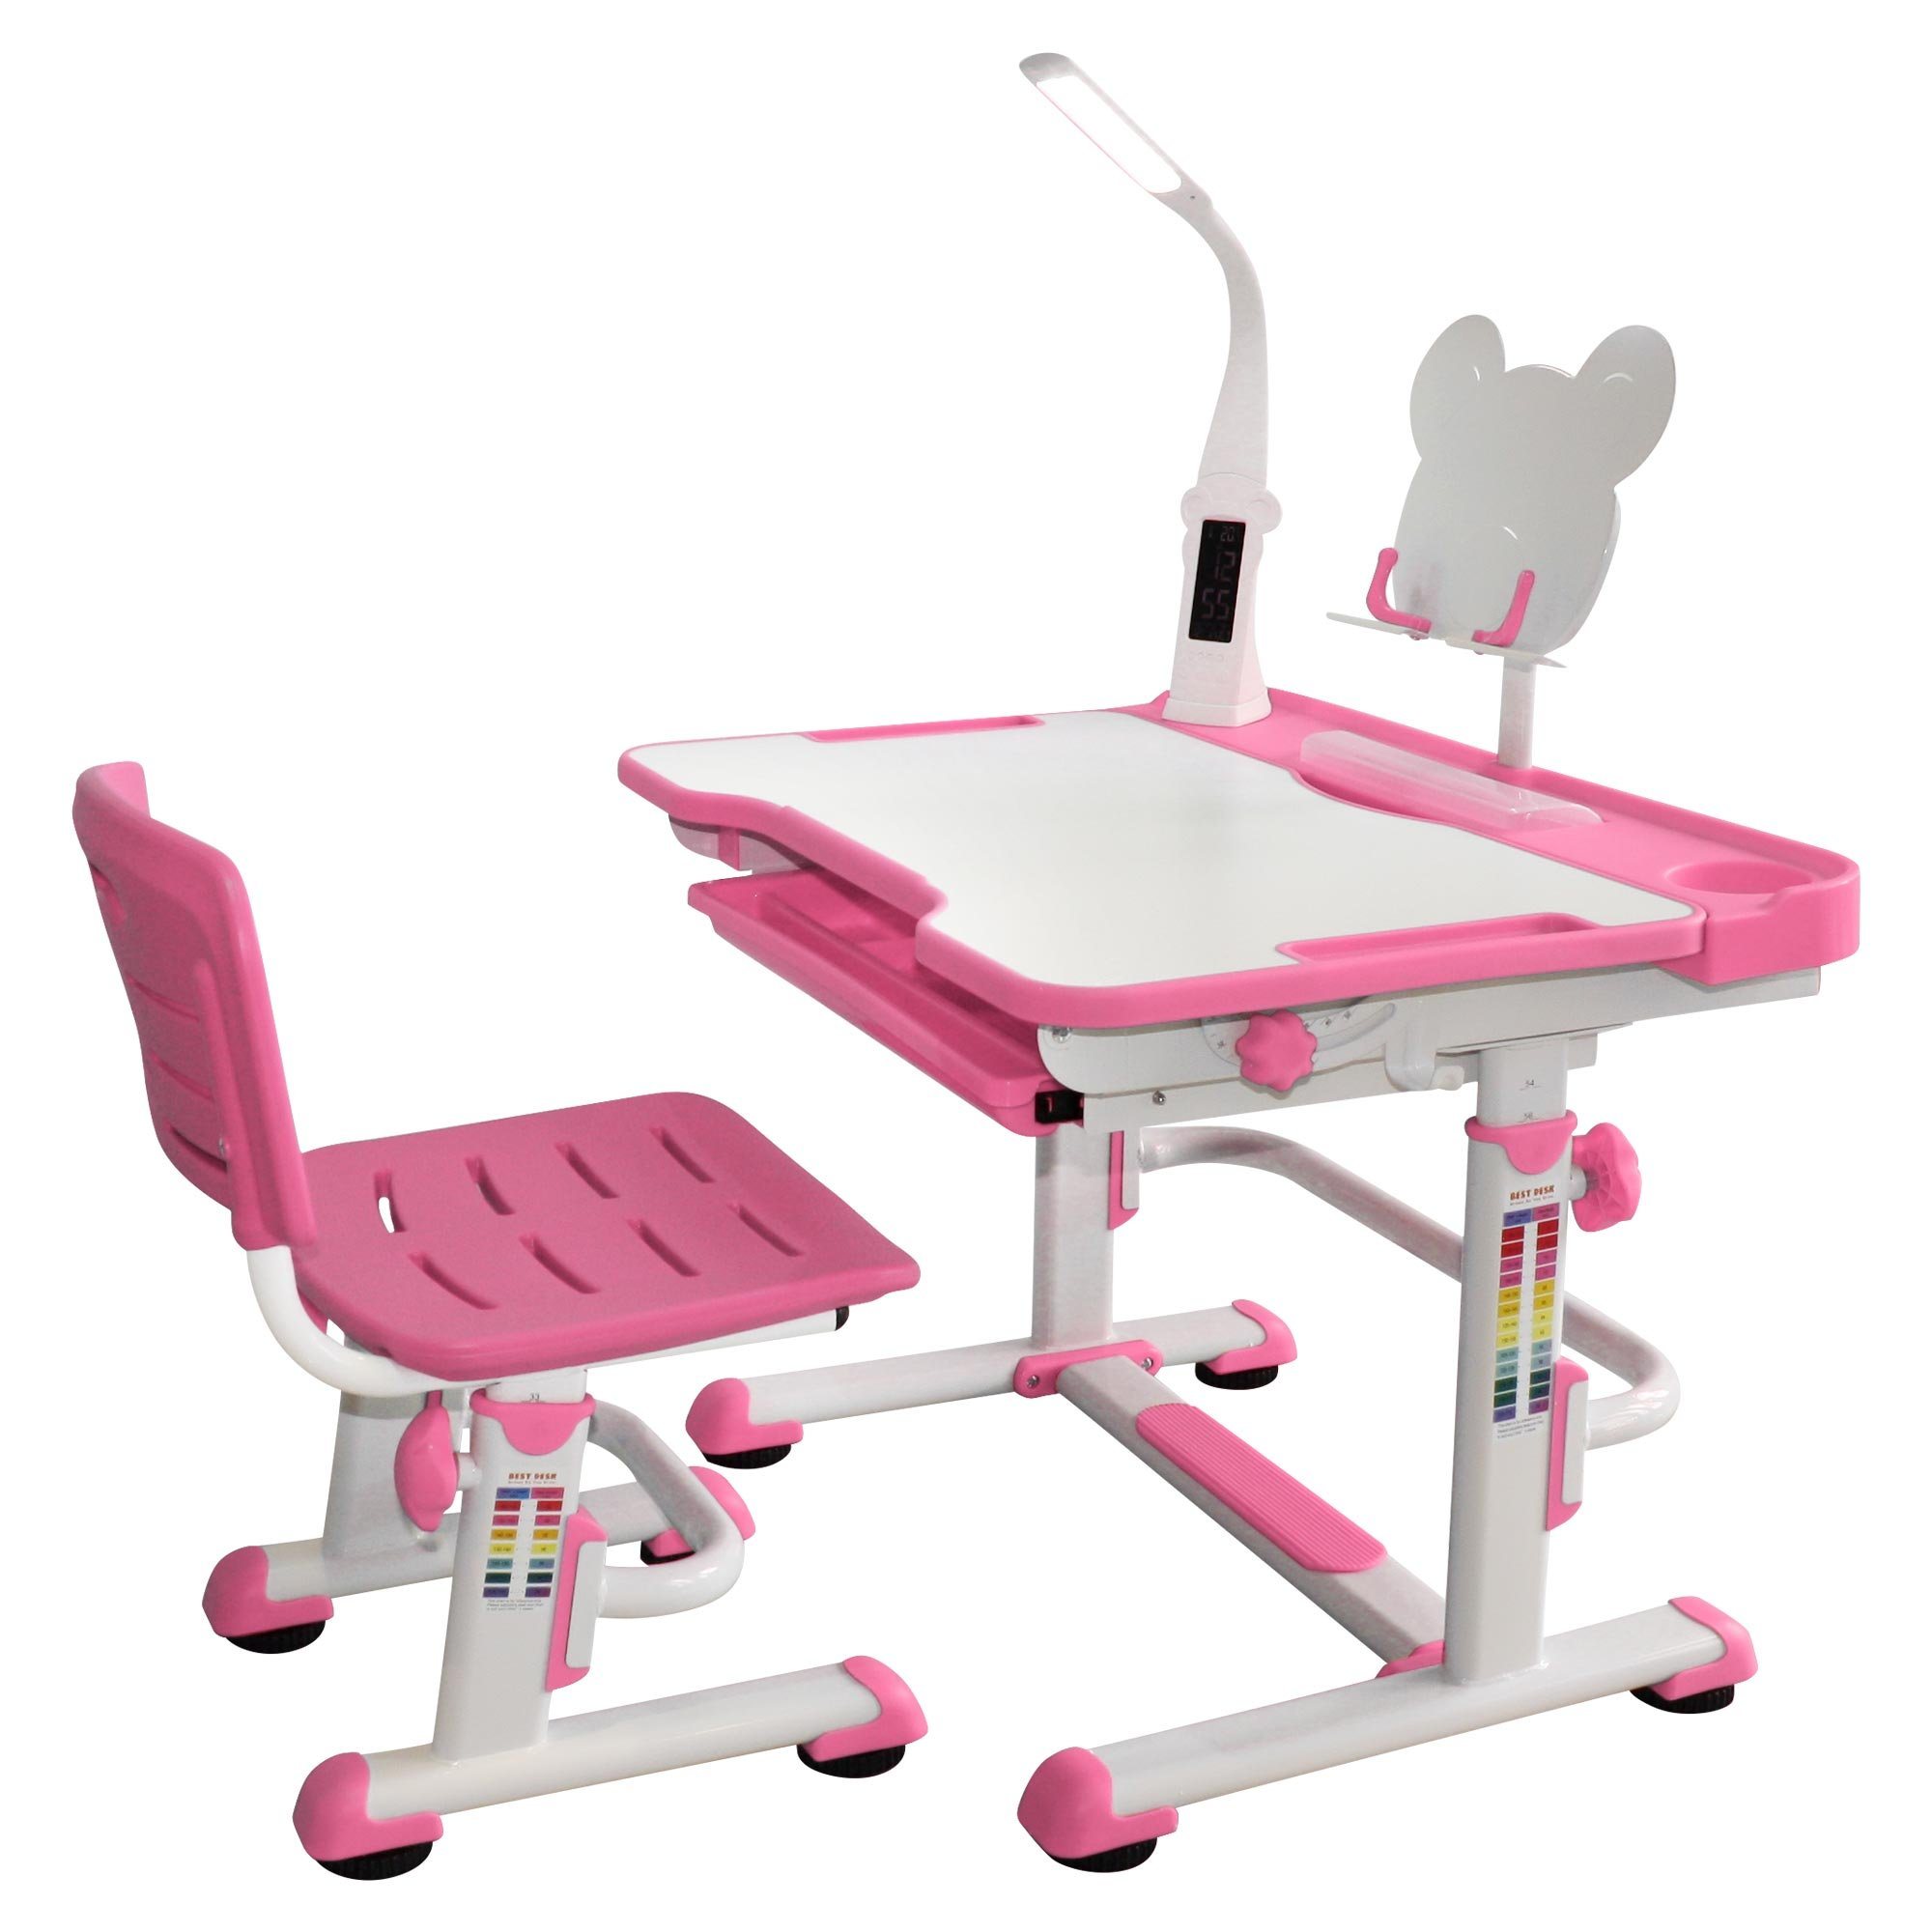 height-adjustable-desk-for-kids-study-table-pink-desk-for-girls-Sprite-Pink-2018-Model-04